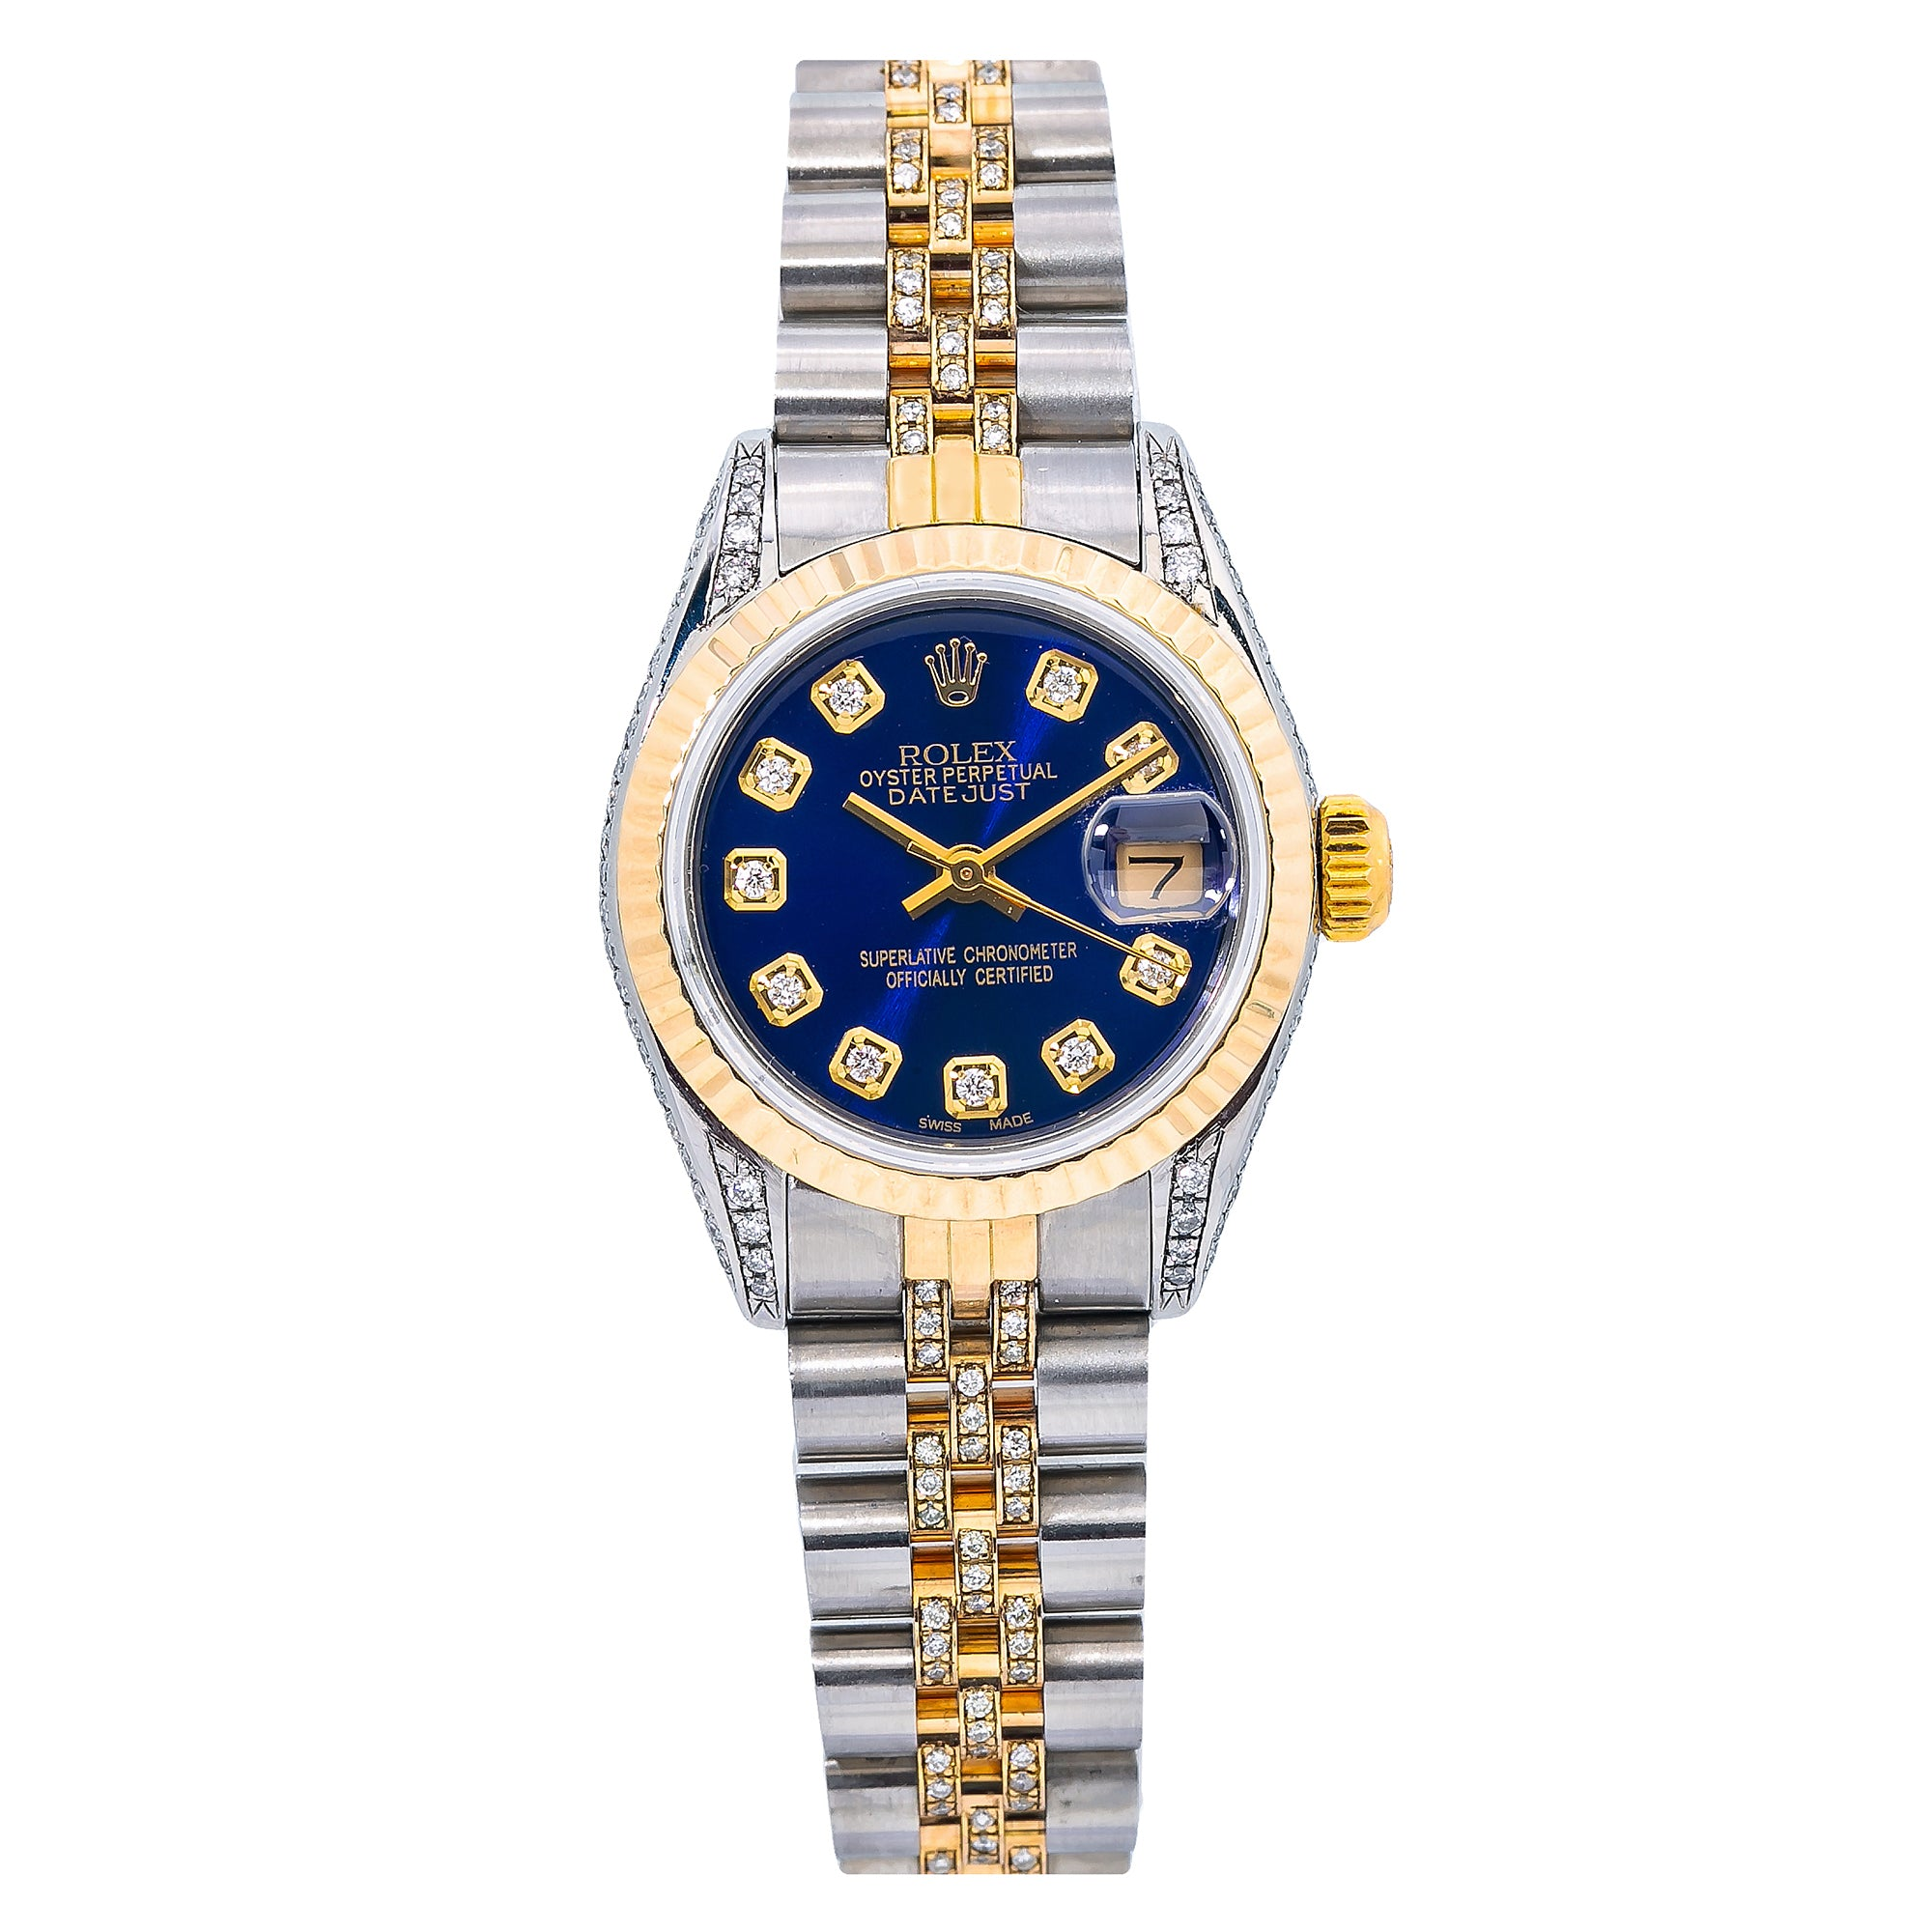 Rolex Lady-Datejust 69173 26MM Blue Diamond Dial With Two Tone Jubilee Bracelet